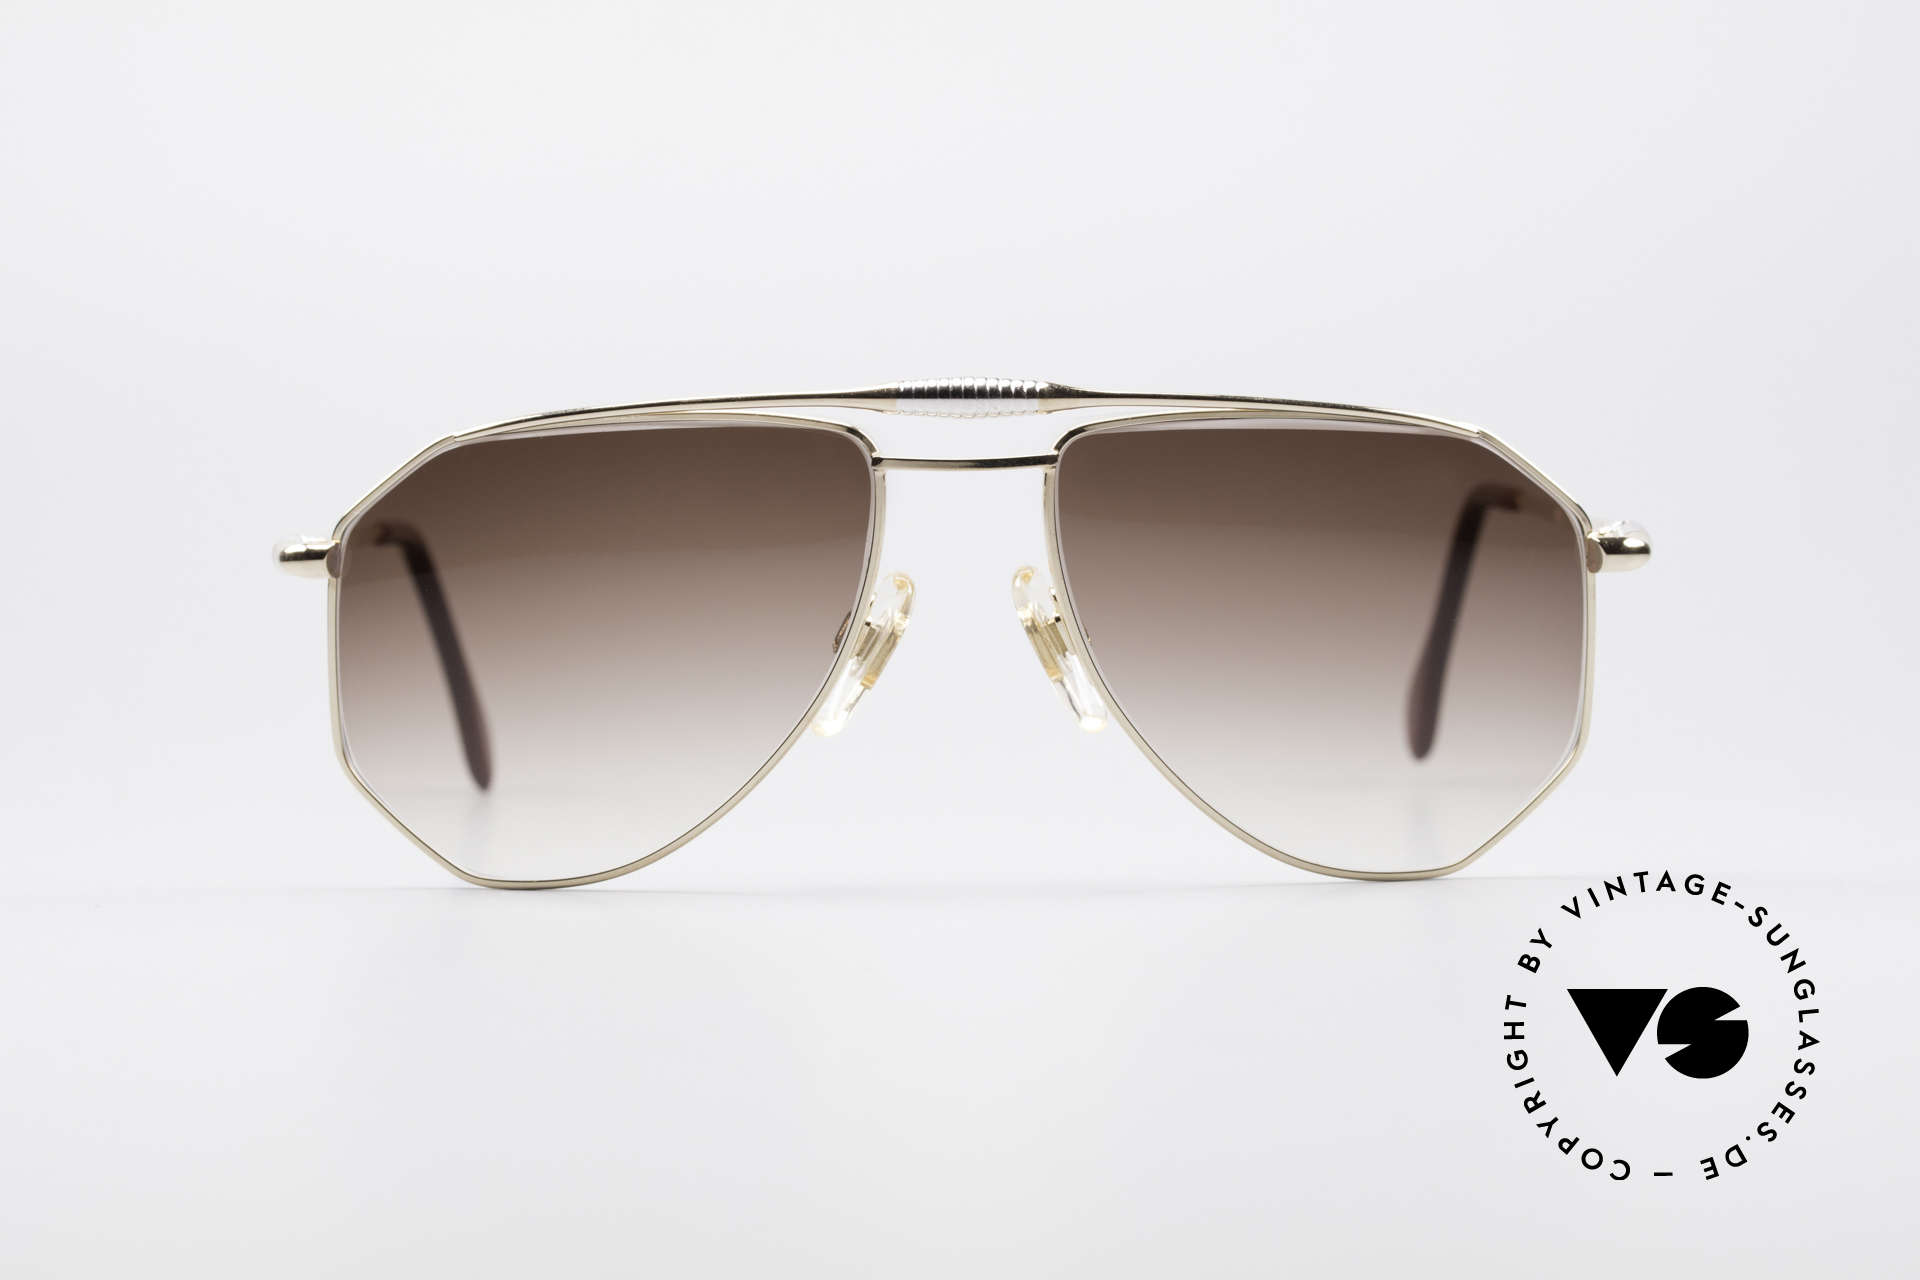 Zollitsch Cadre 120 Medium 80's Vintage Shades, distinctive frame for men (outstanding quality, Germany), Made for Men